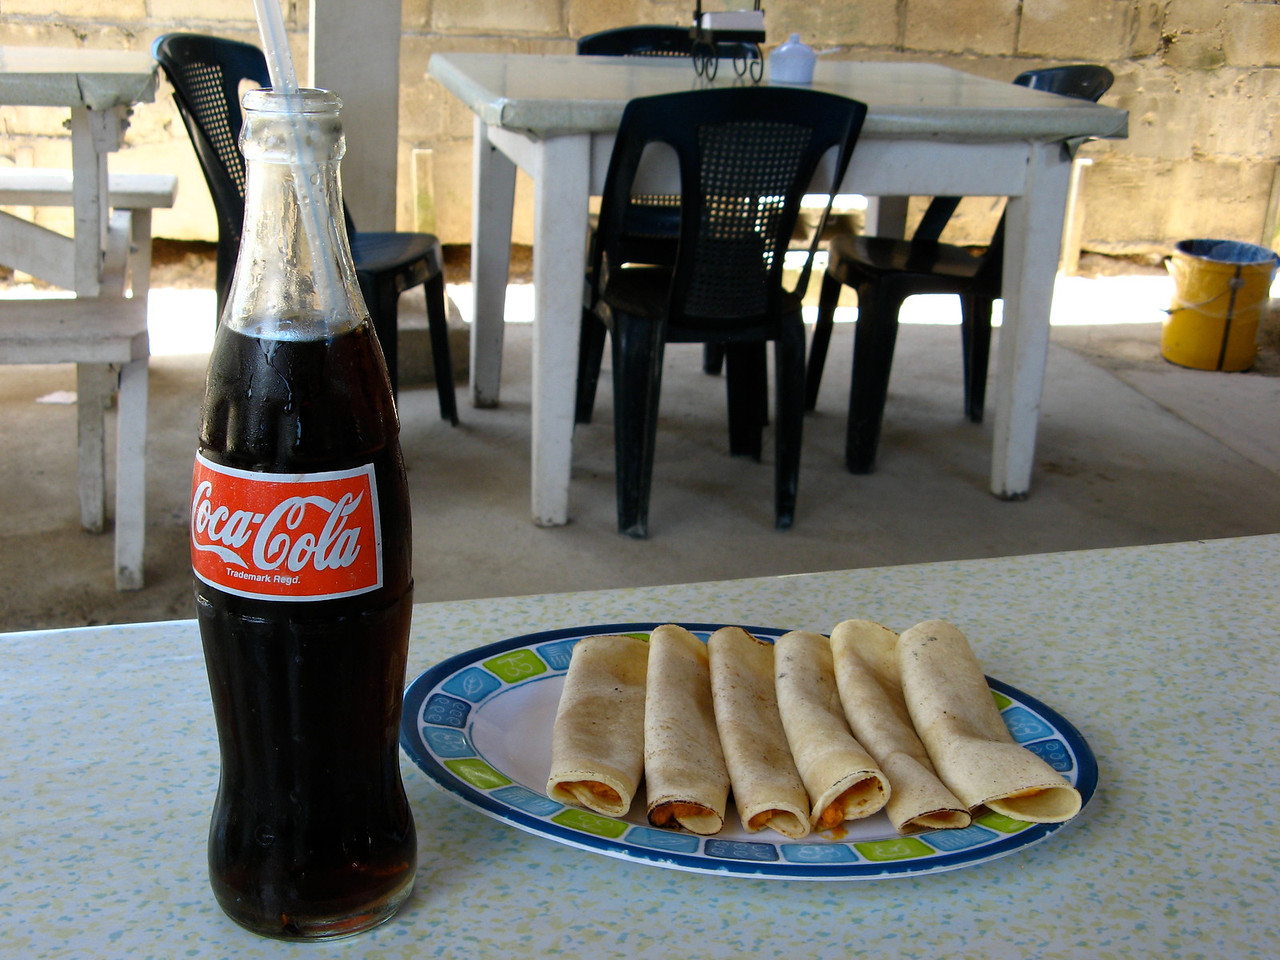 The Coke is almost more expensive than the 6 tacos.